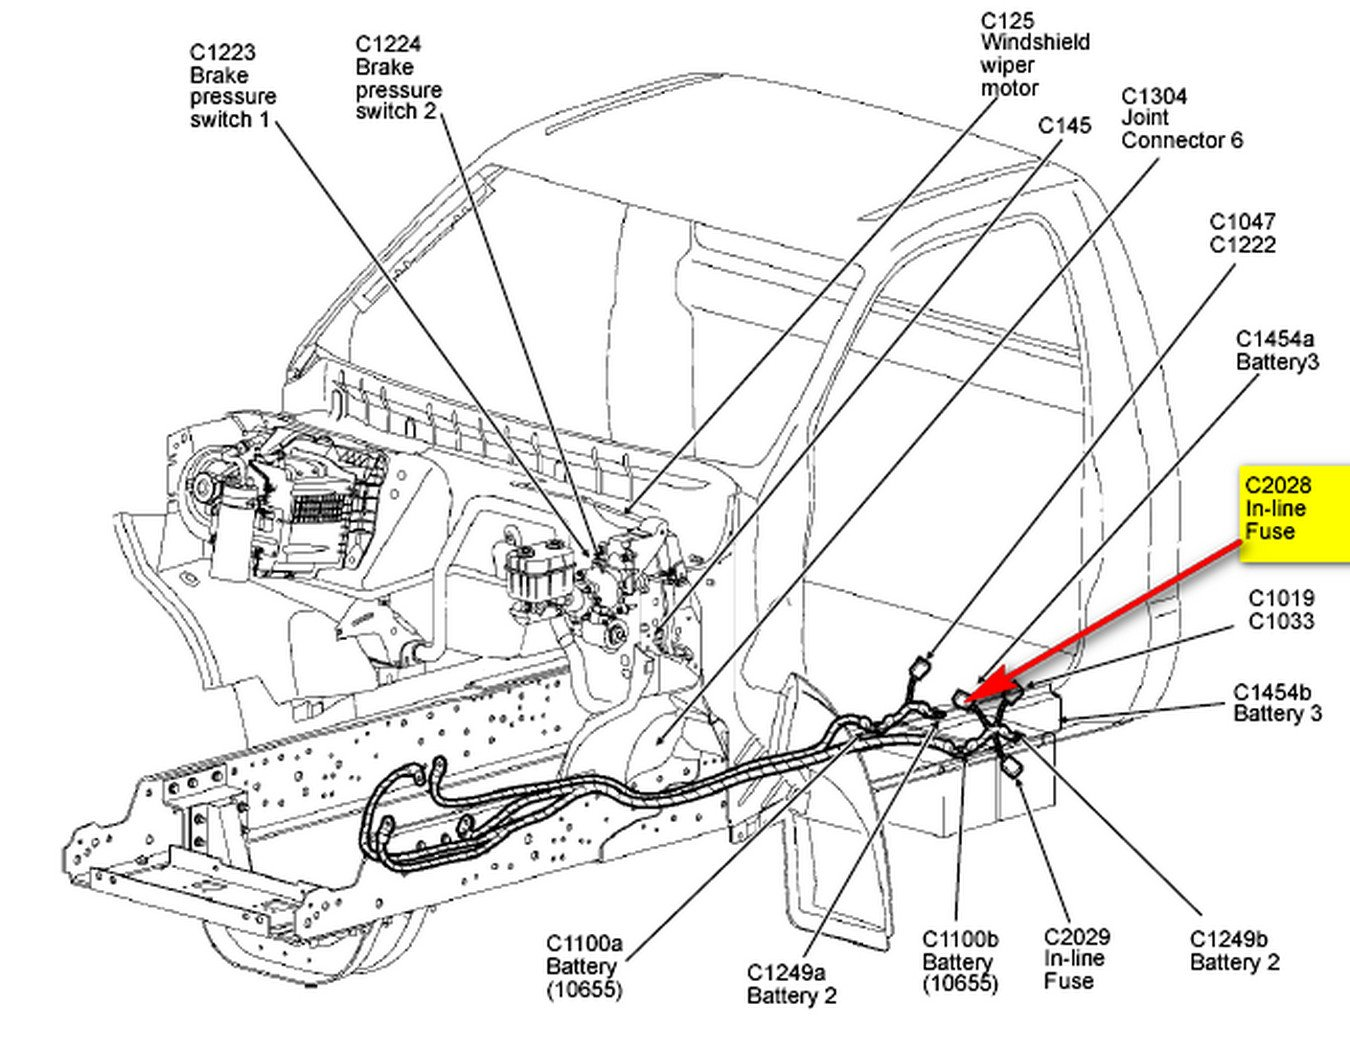 Fuse Diagram F750 Cat Reinvent Your Wiring Ford Ranger Box We Have A F650 2008 Model With Engine C7 No Rh Justanswer Com Types 2011